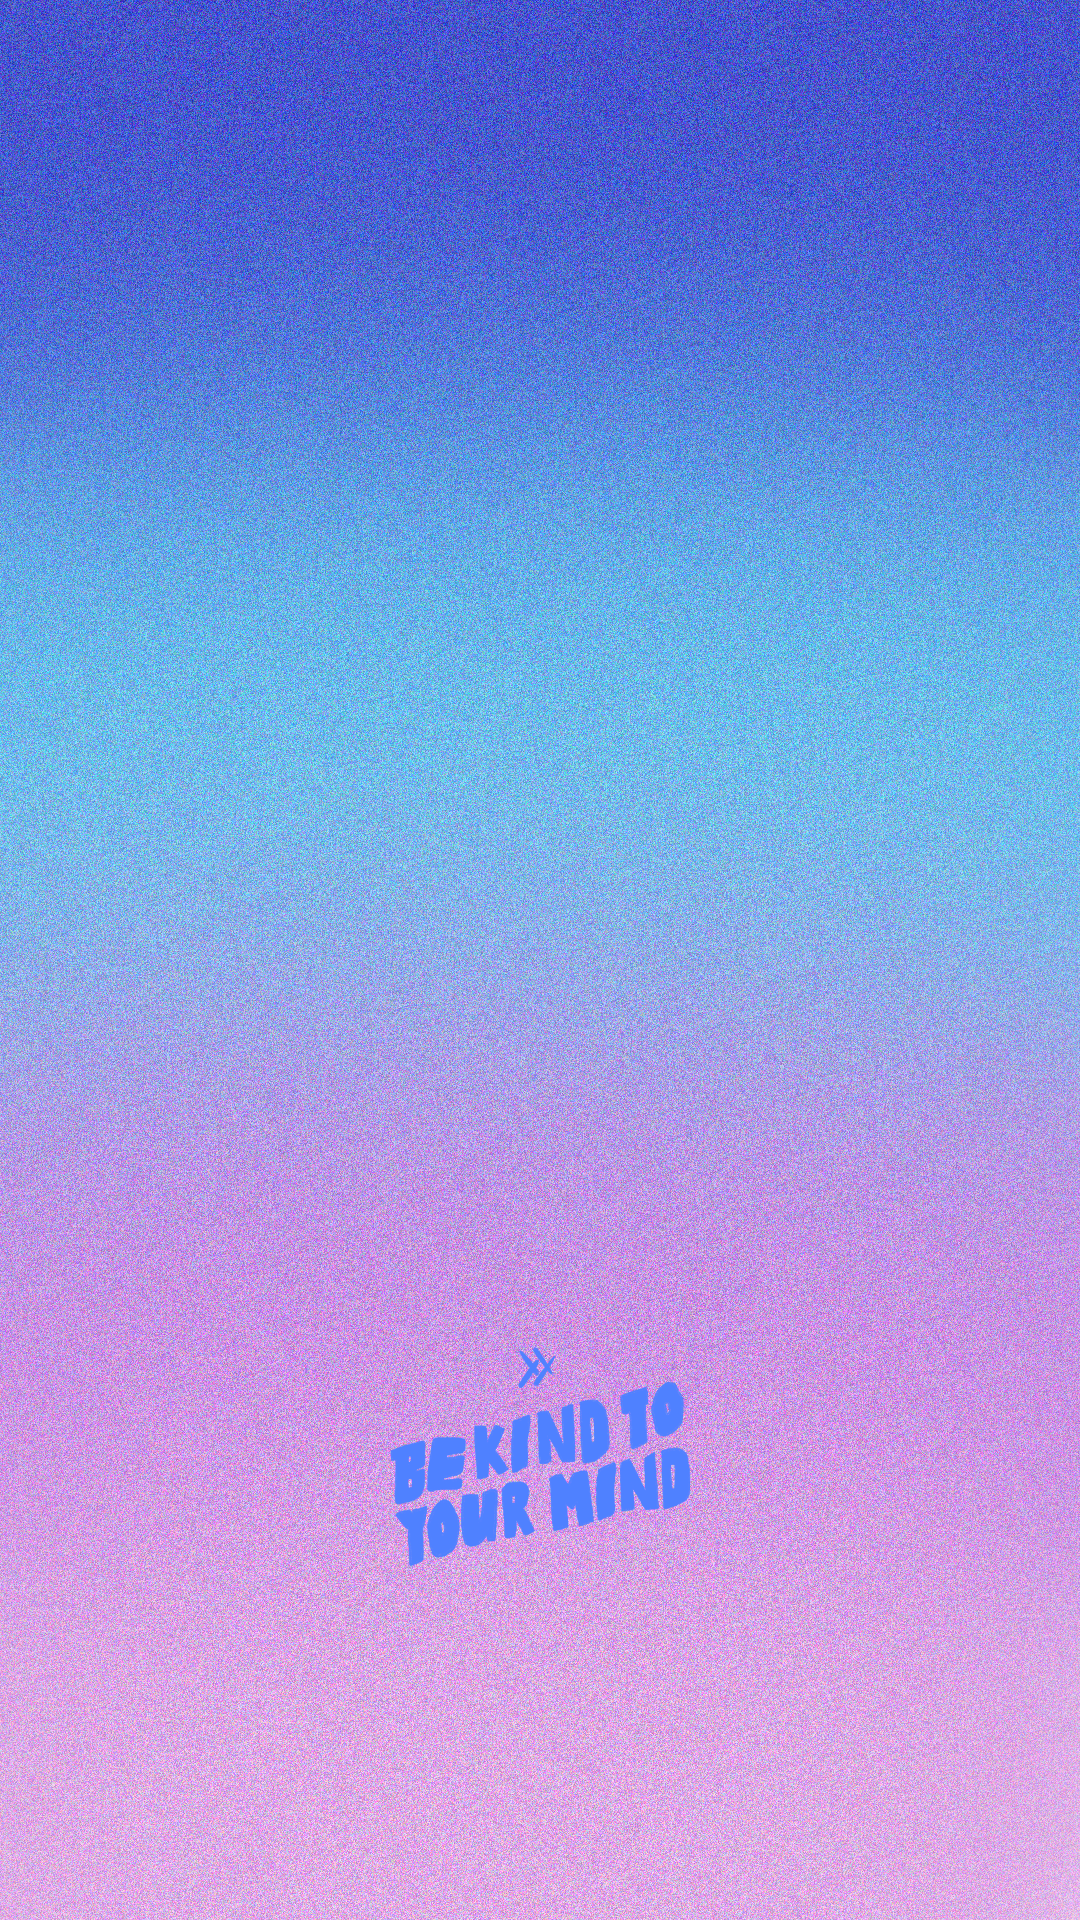 Be Kind to Your Mind wallpaper